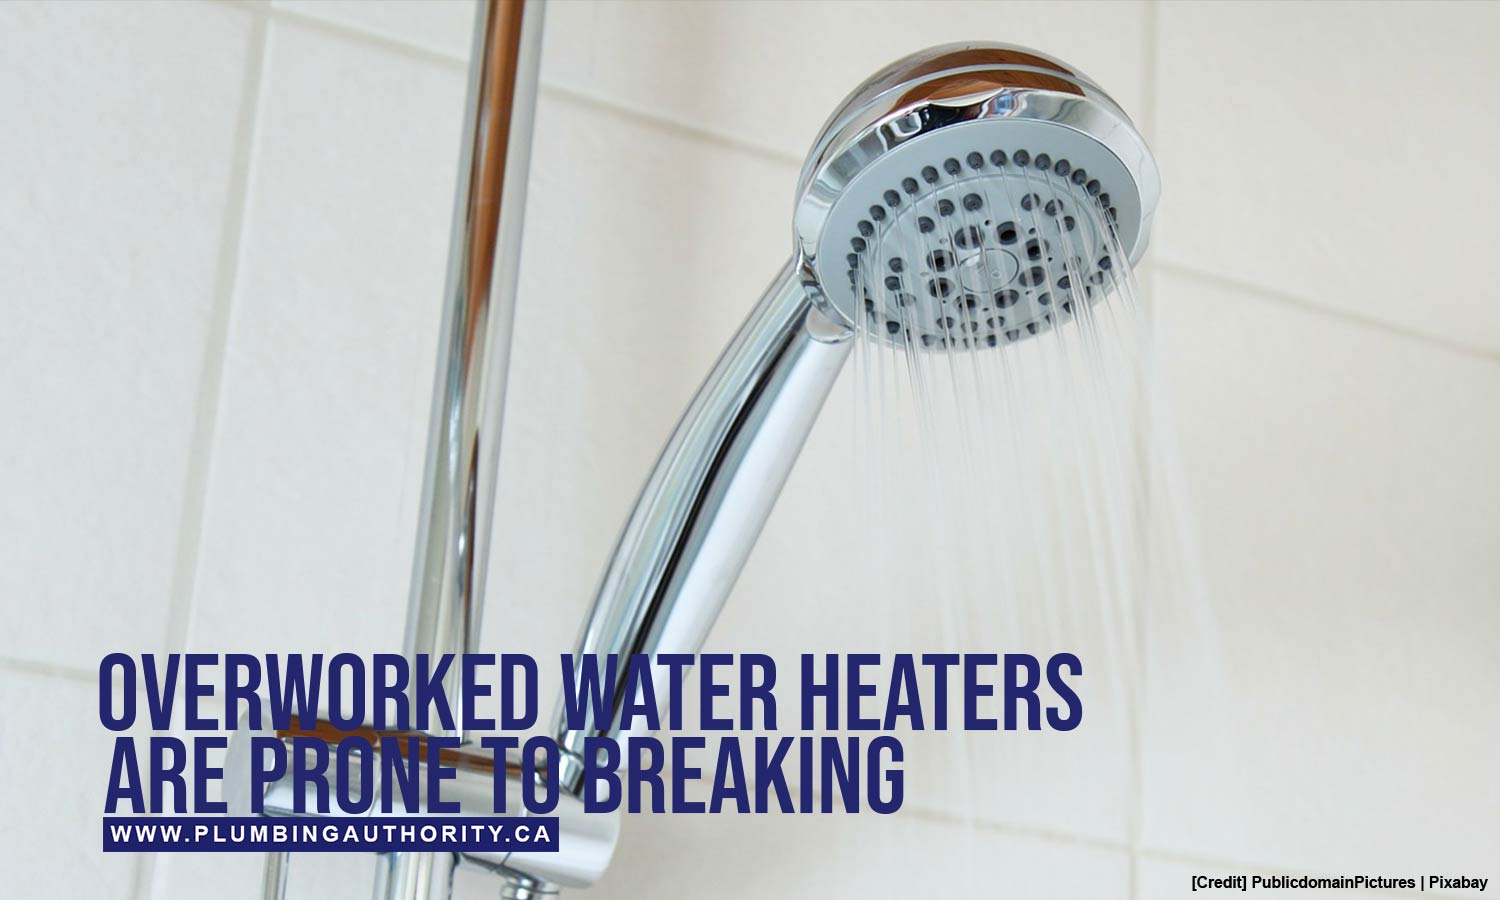 Overworked water heaters are prone to breaking